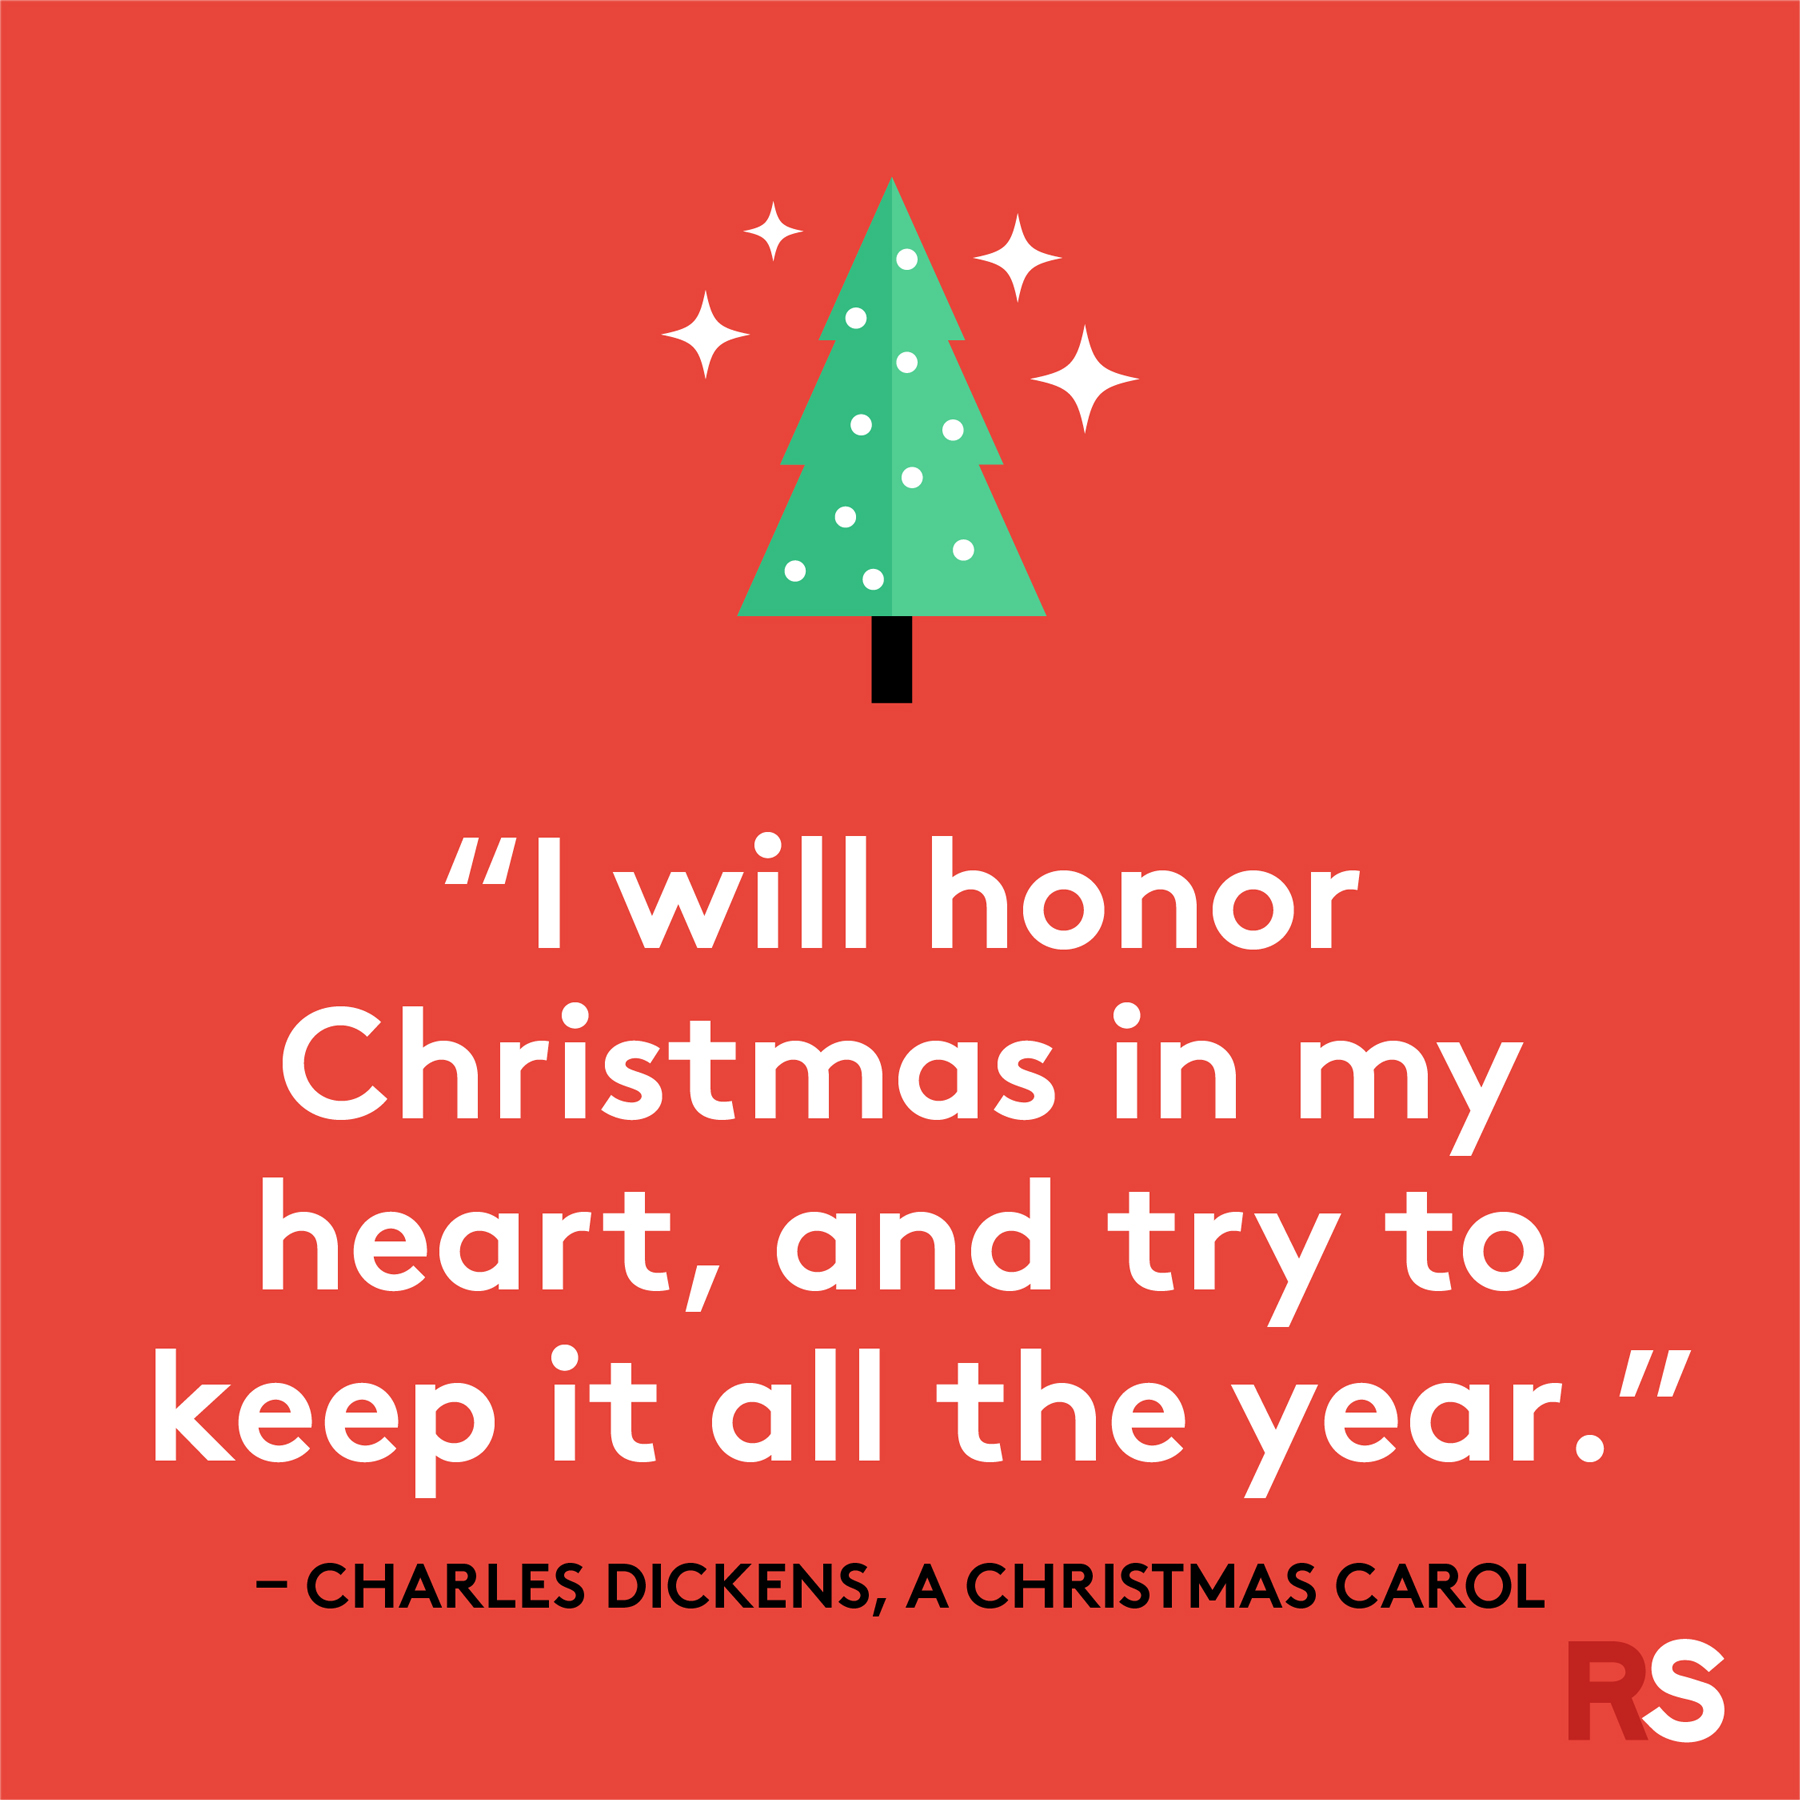 Best Christmas quotes - Charles Dickens, A Christmas Carol